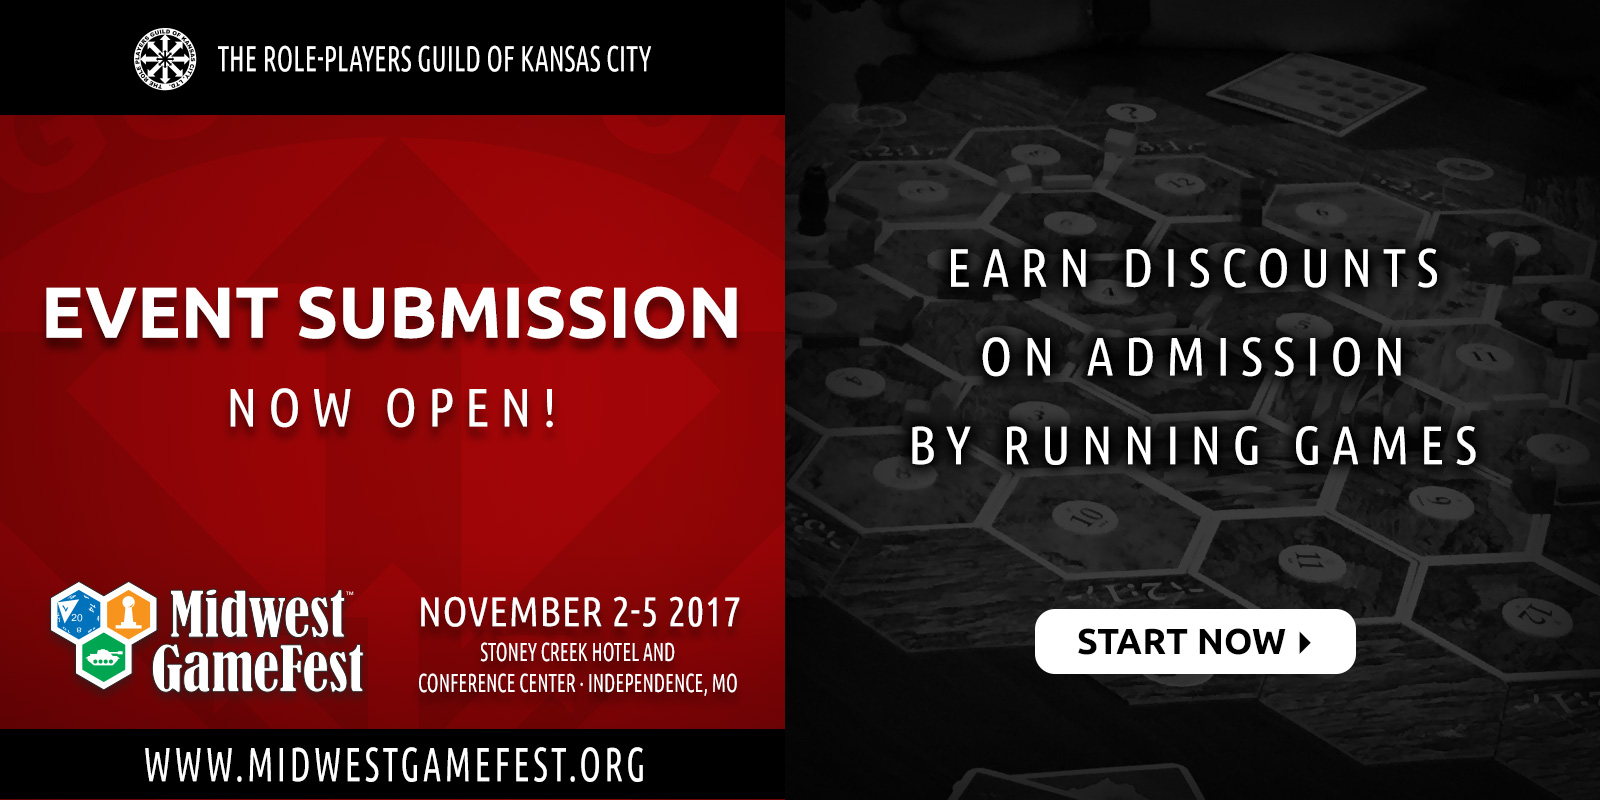 Event Submission Opens